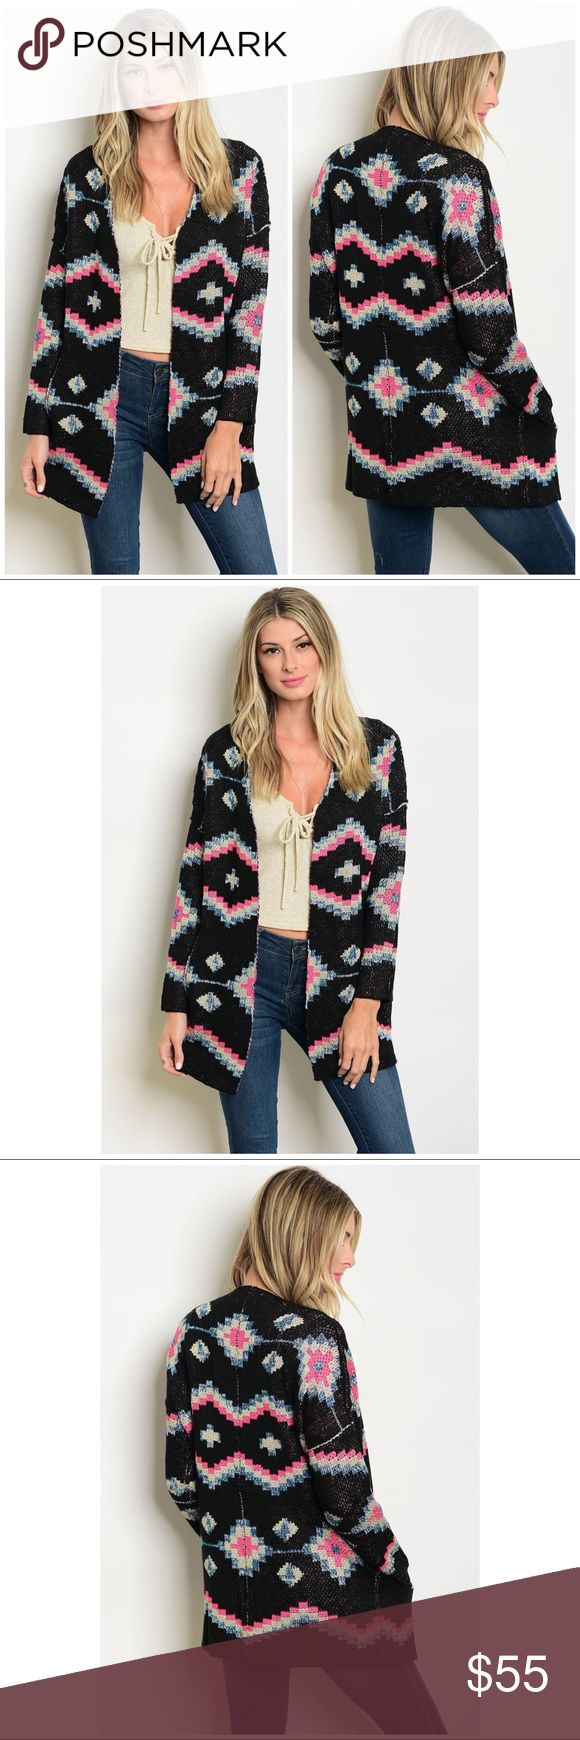 "Boho Chic Tribal Print Cardigan Sweater Jacket You'll look chic and trendy in this tribal geometric print cardigan sweater jacket! The cardigan is black with pink, blue & silver lurex geometric patterns.  *90% acrylic/10% polyester *Model is 5'7"" wearing a size Small *Open front  CLOSET RULES: Bundle Discounts * No Trades * Smoke free Laura's Boutique Sweaters Cardigans"